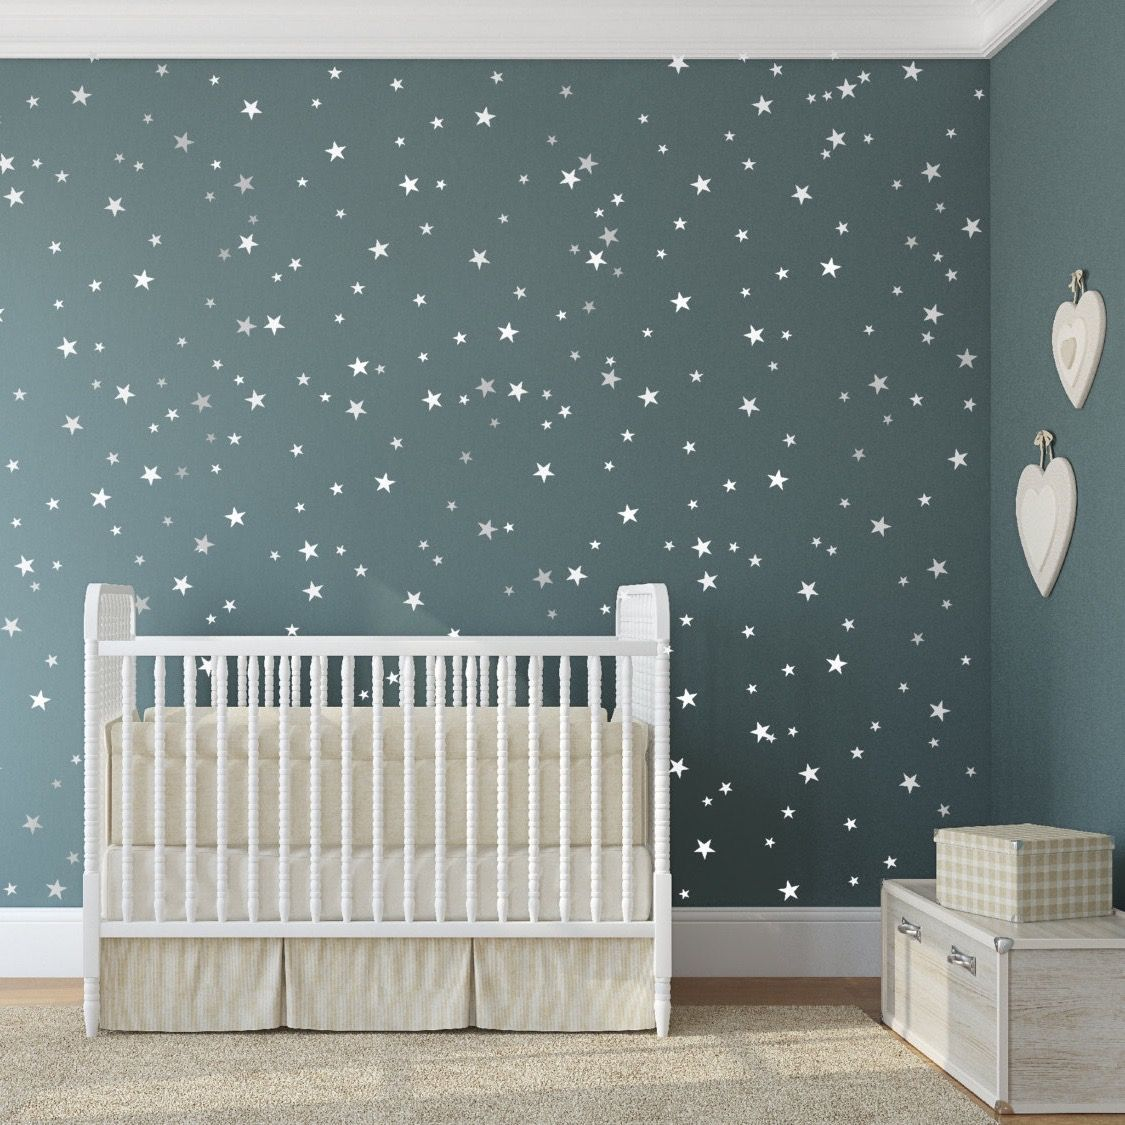 Bedroom Stars Wall Decals Star Wall Nursery Design And